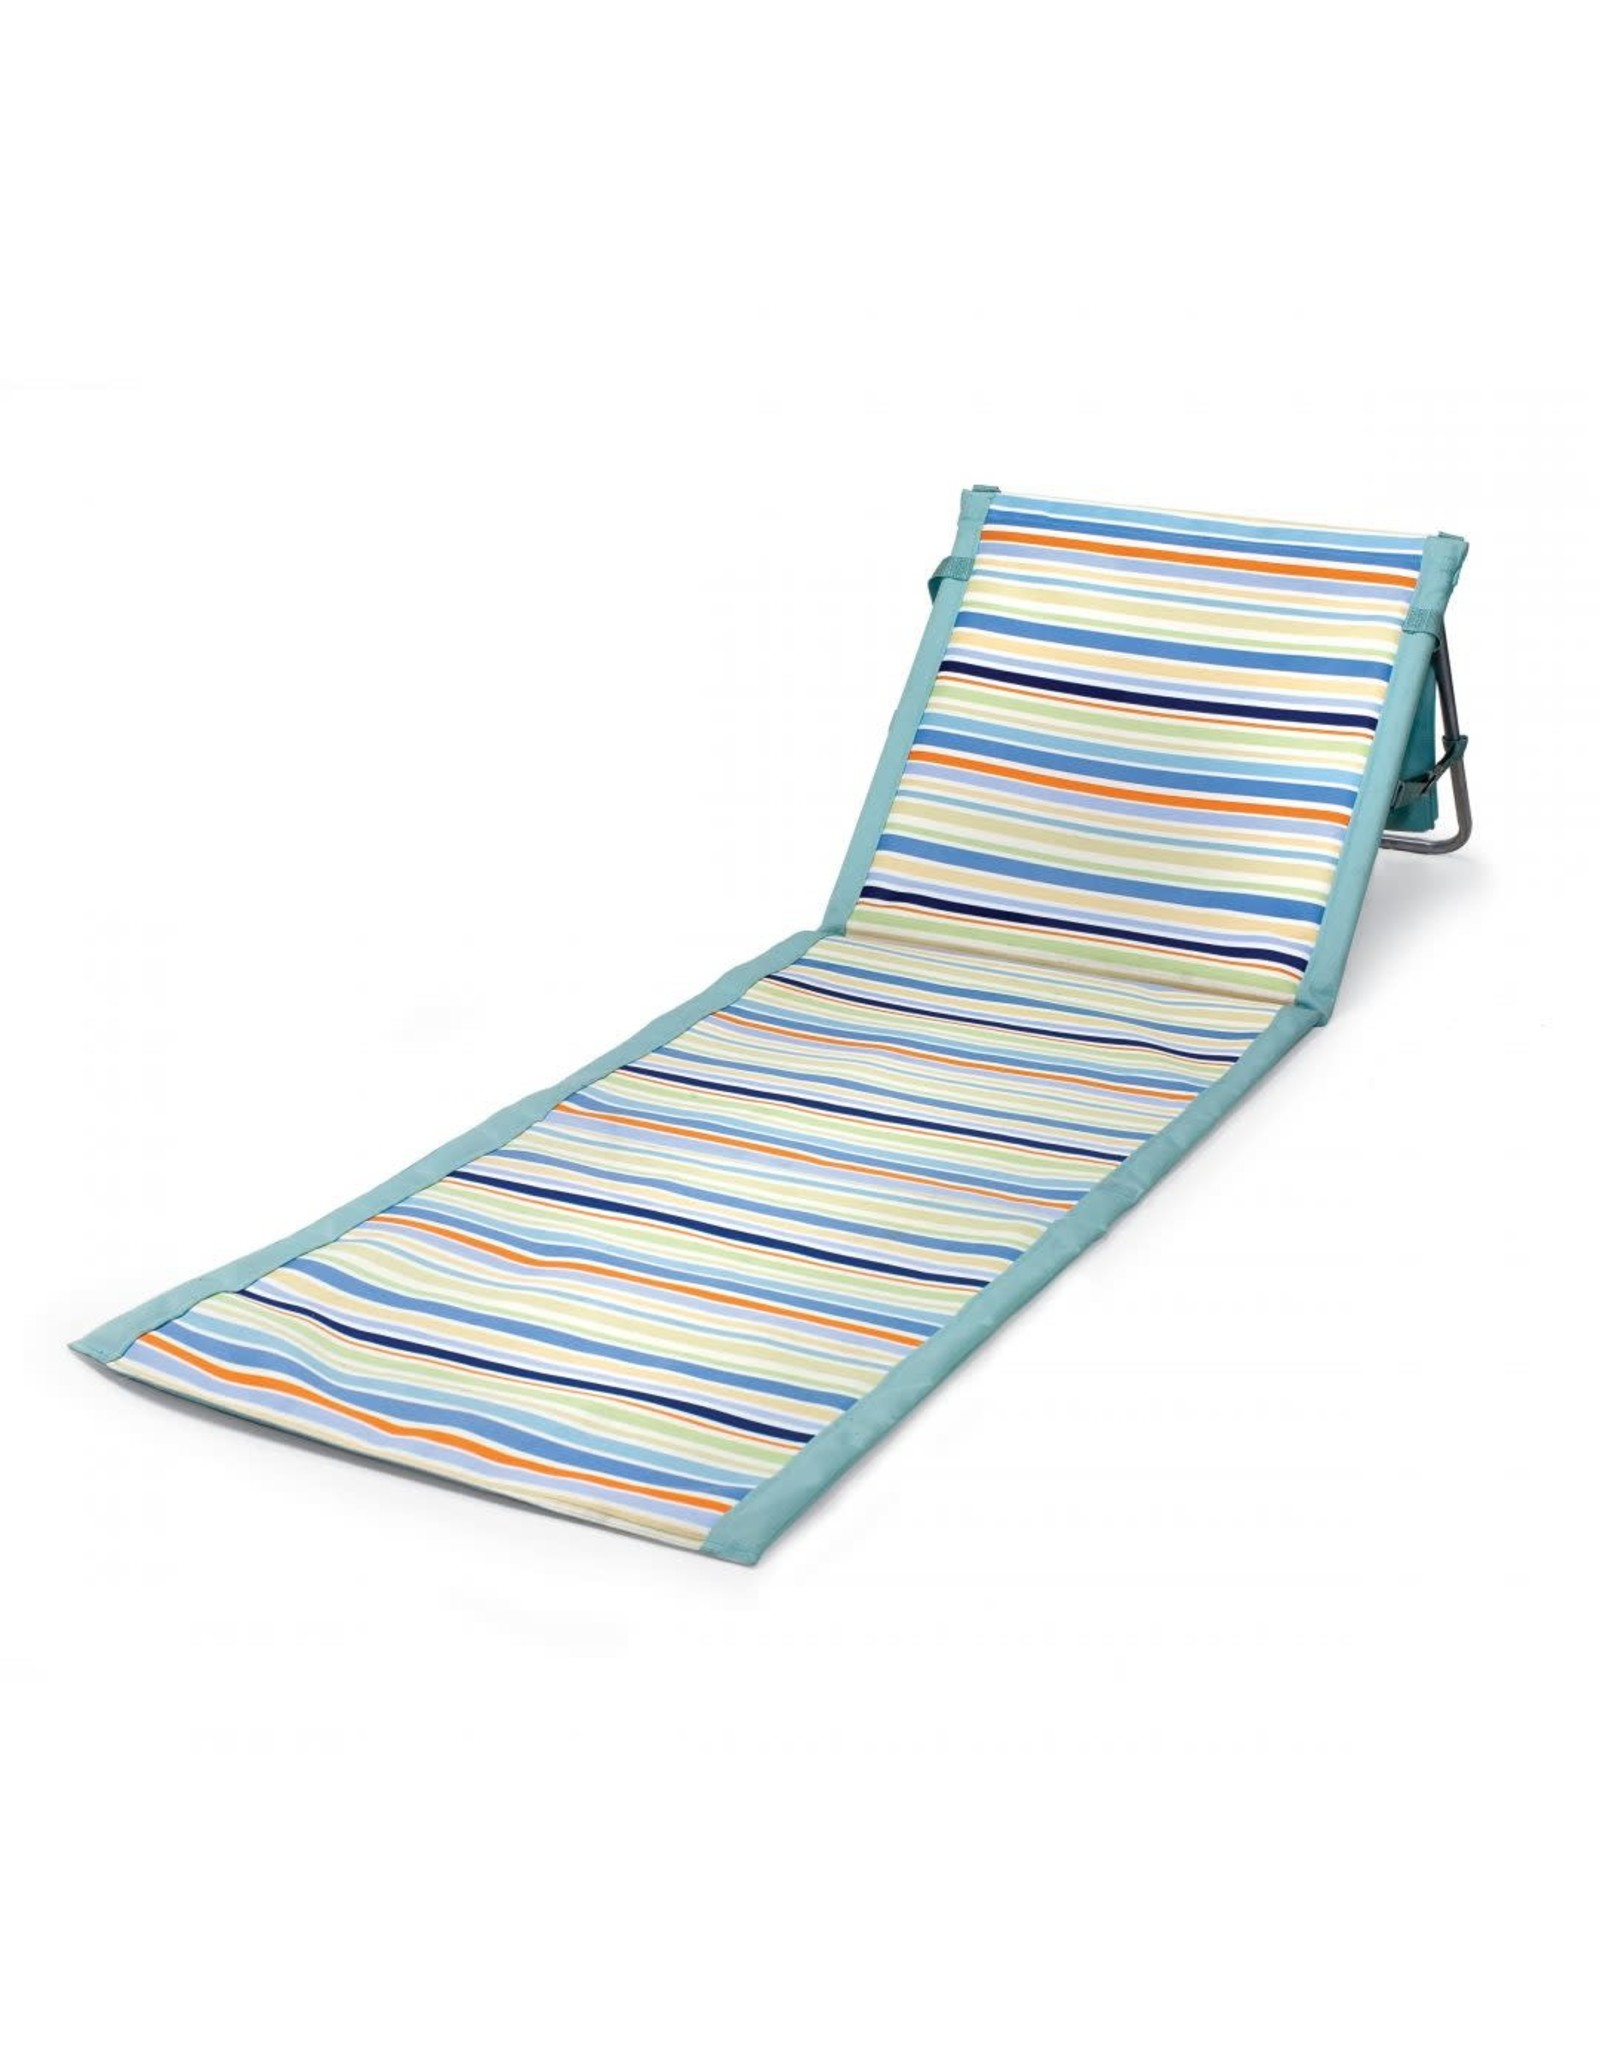 Oak + Arrow Interiors Beachcomber Chair - Sky Blue with Multi Stripe Pattern